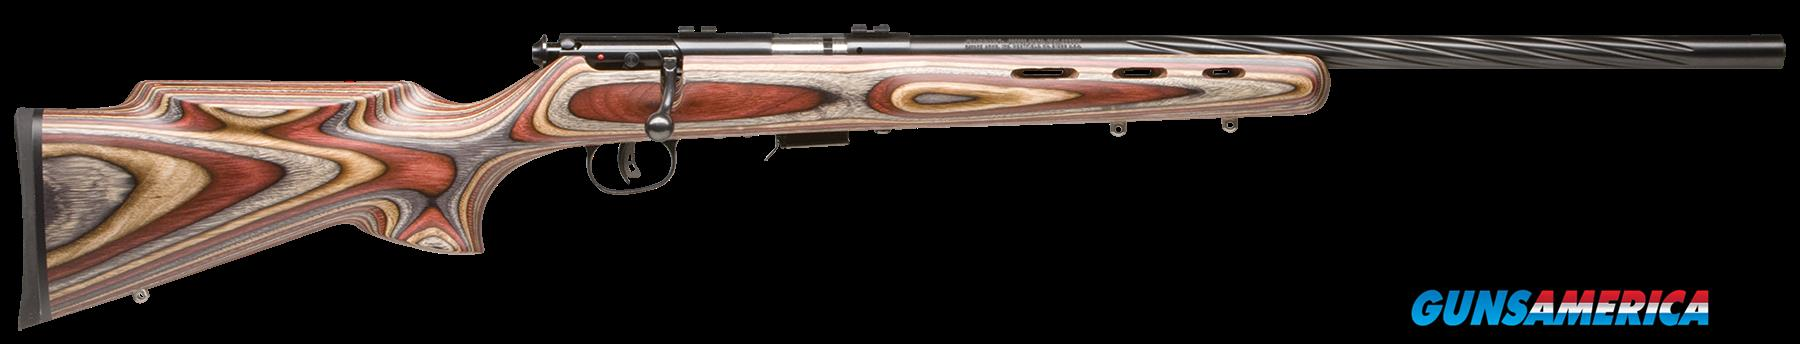 "Savage 96770 93R17 BRJ Bolt 17 HMR 21"" 5+1 Laminate Multi-Color Stk Blued  Guns > Rifles > Savage Rifles > Accutrigger Models > Sporting"